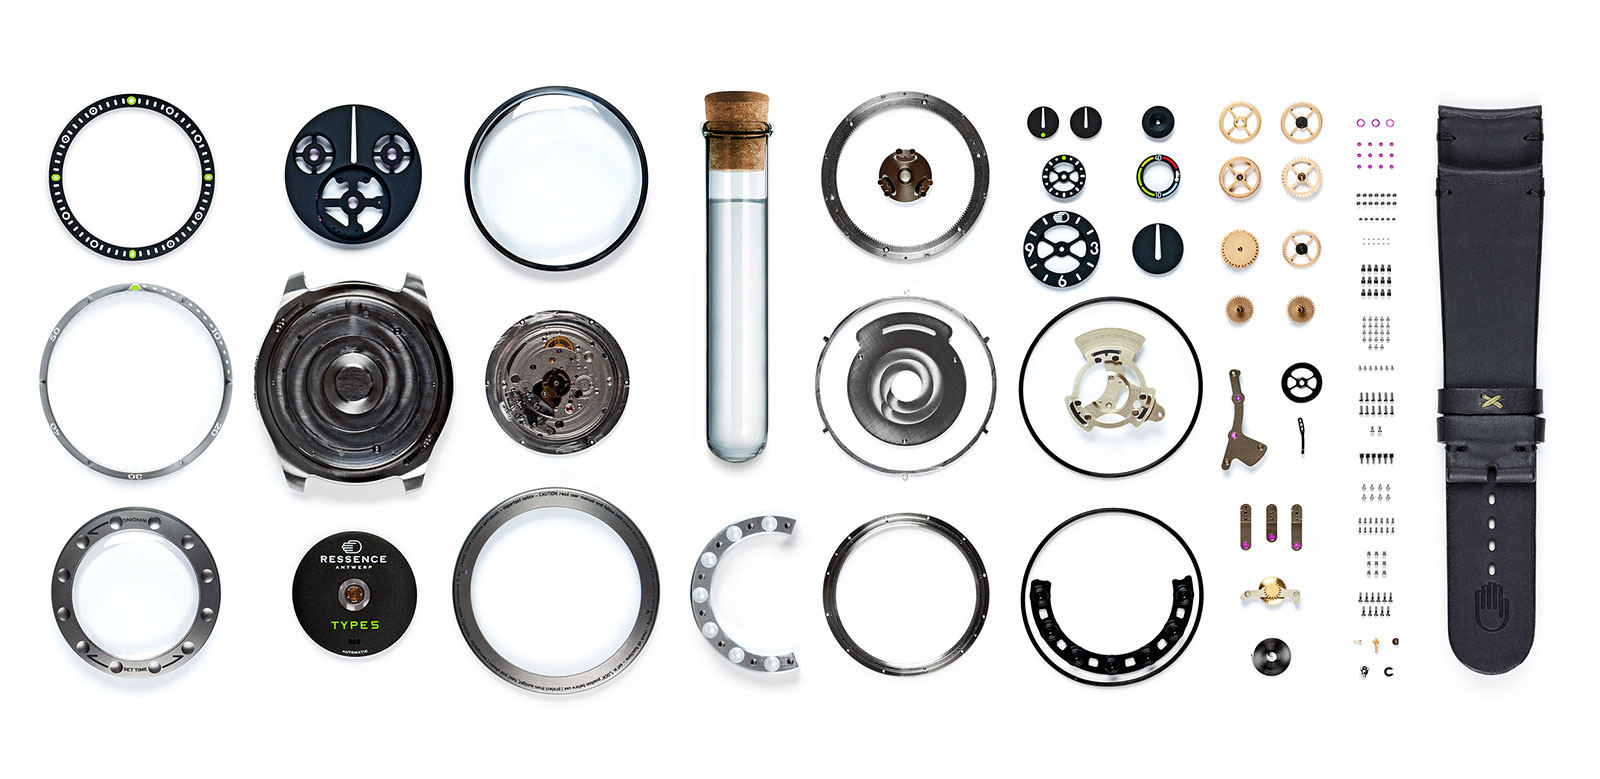 Ressence Type 5 components